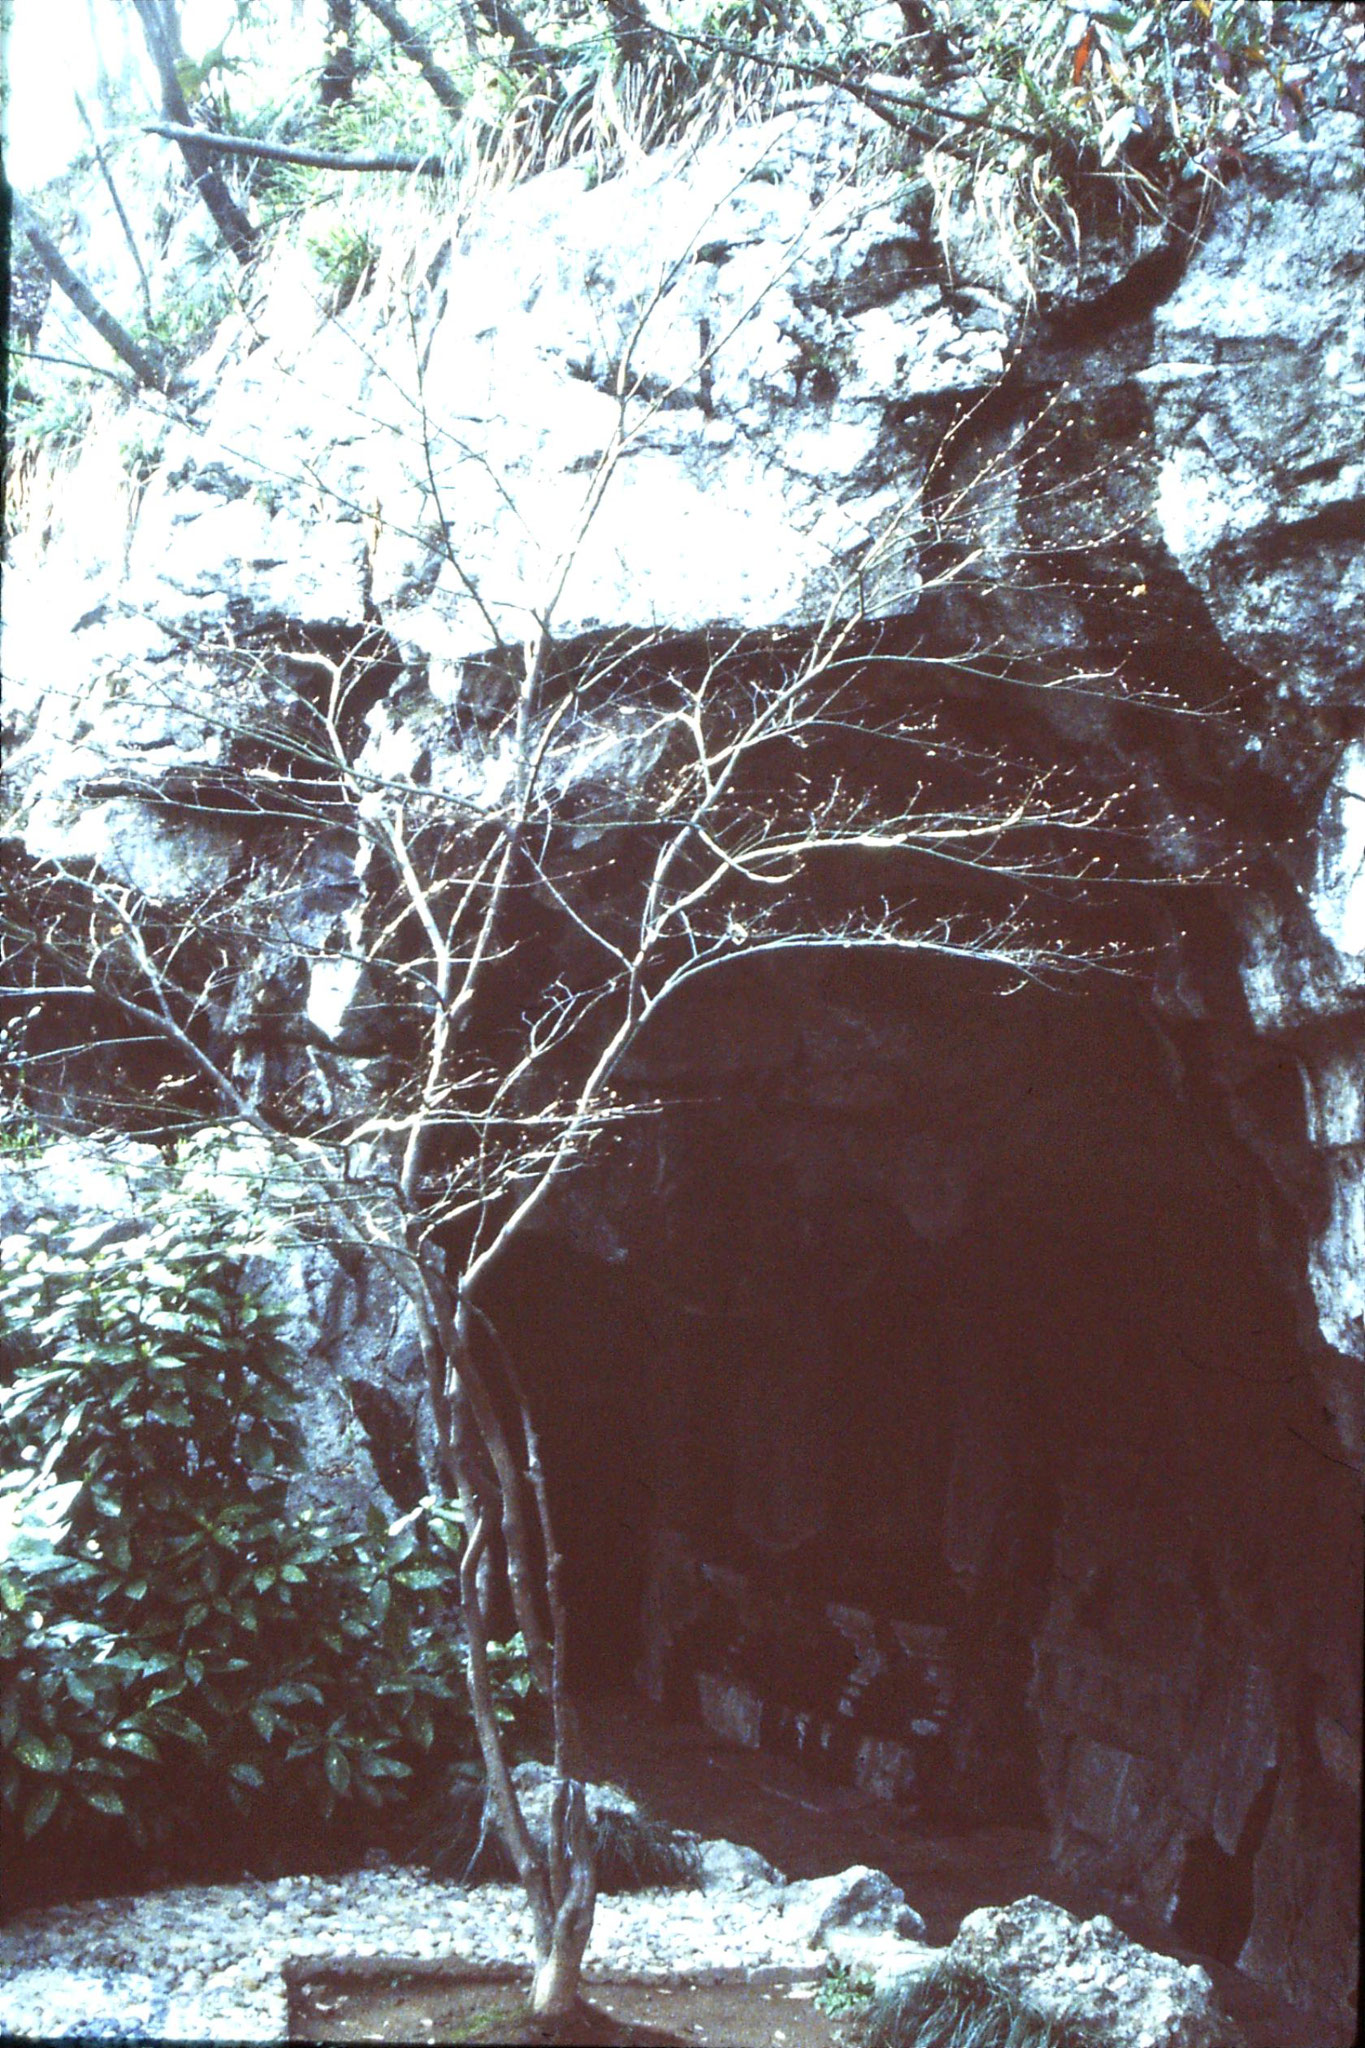 26/3/1989: 20: Cave at Shiwu south of Xihu Lake